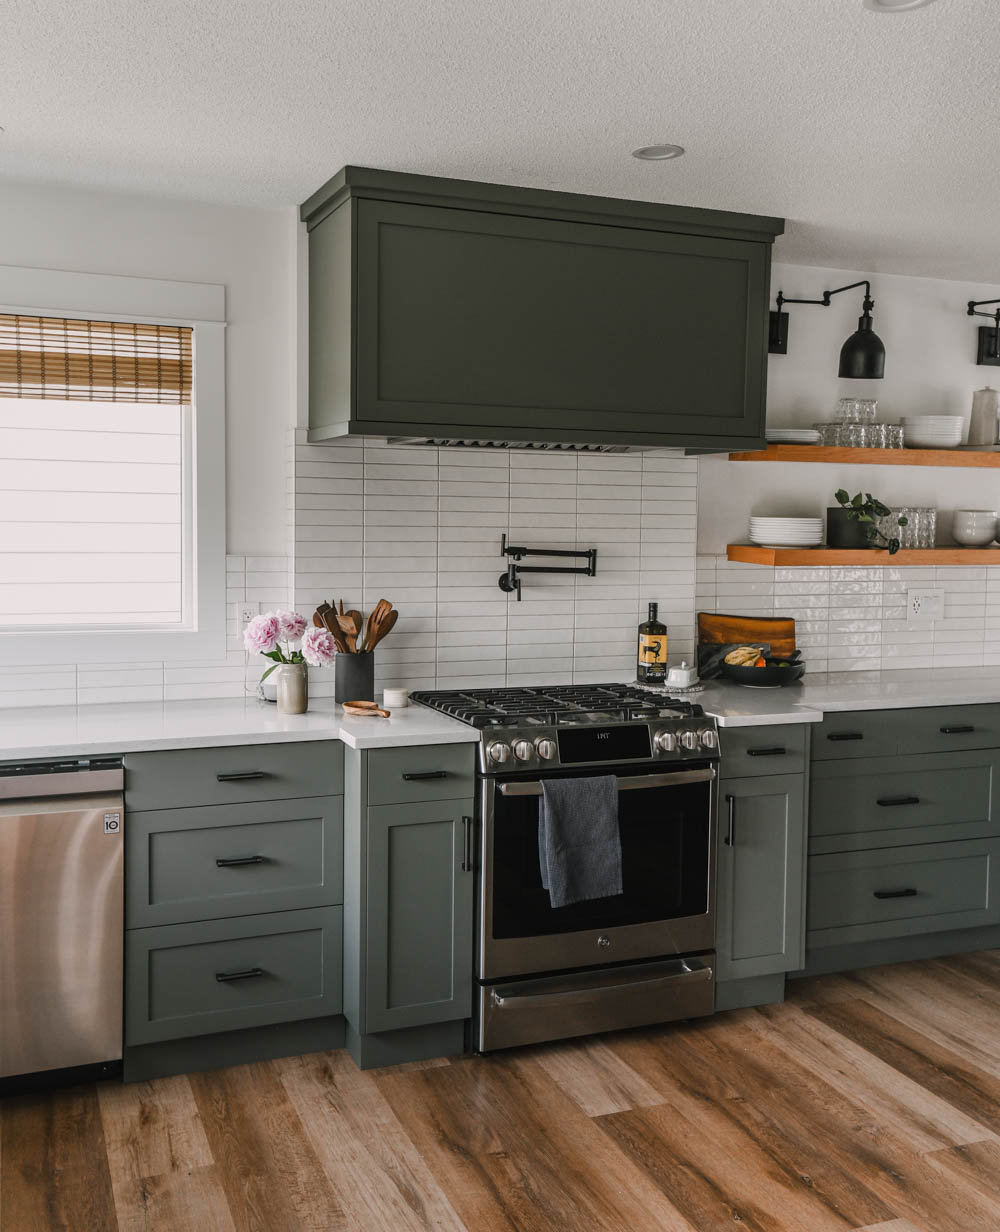 classic green shaker cabinets with white walls